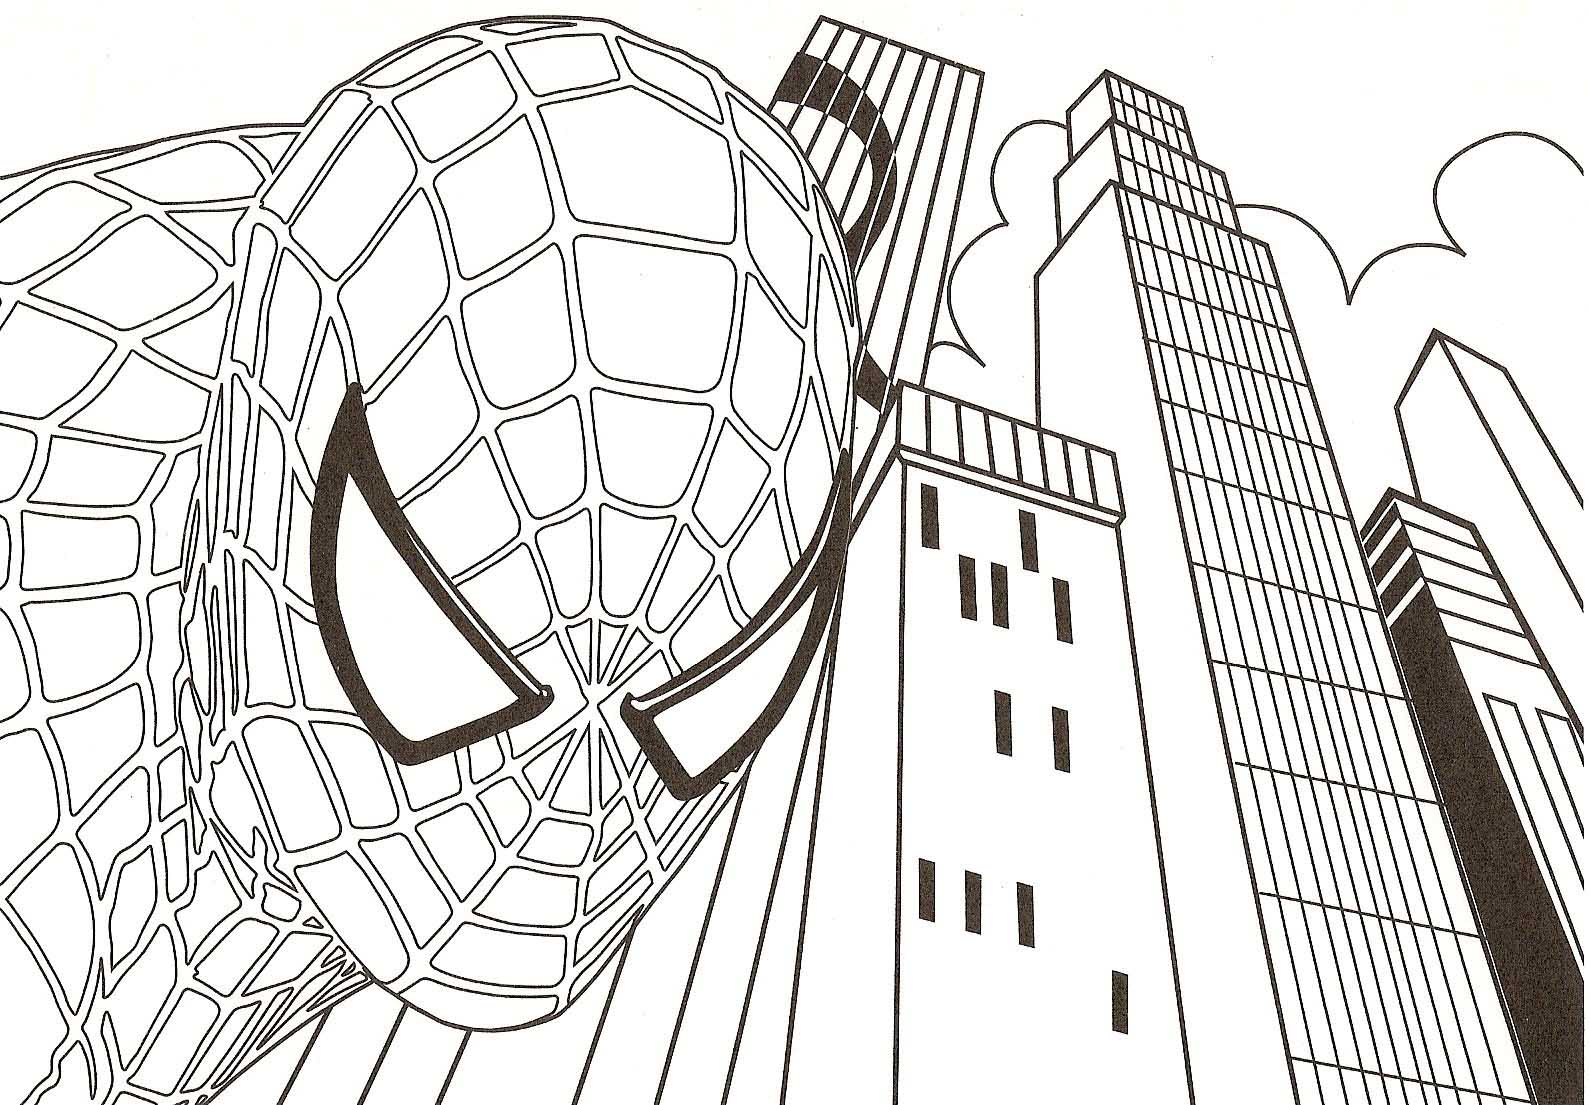 spiderman coloring pages games - Spiderman Coloring Page